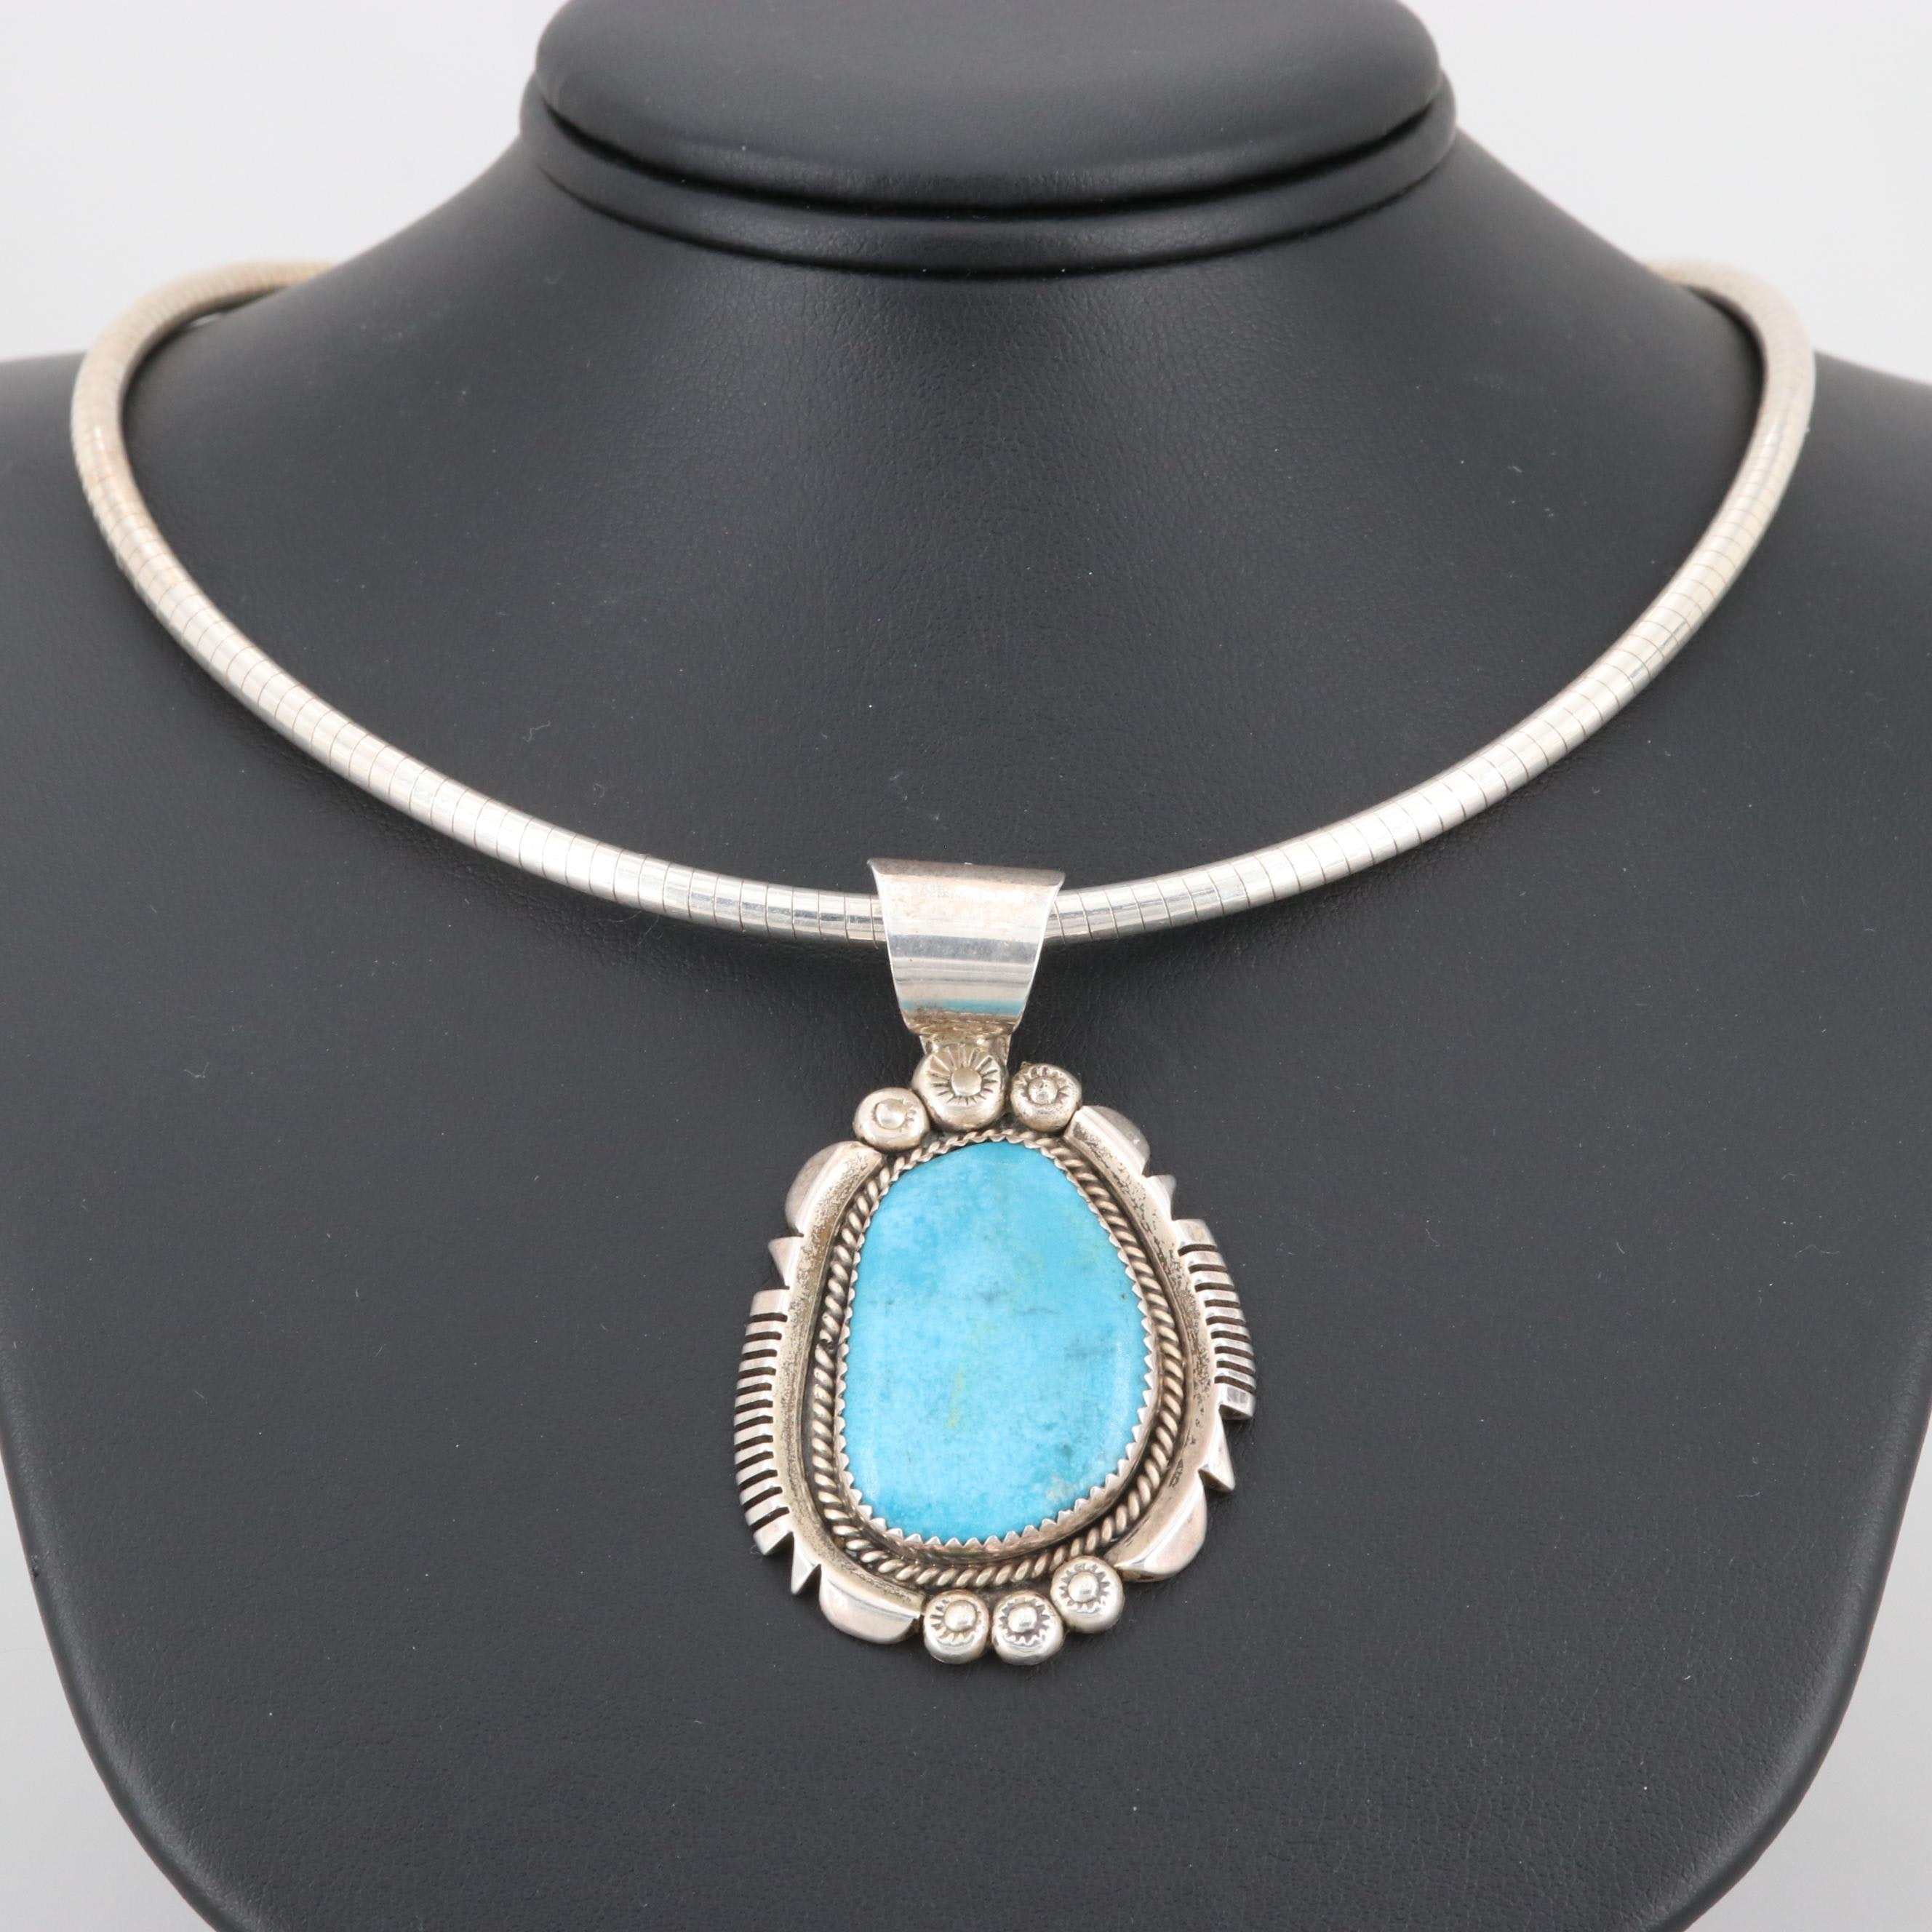 Albert H. Cleveland Navajo Diné Sterling Silver Imitation Turquoise Necklace